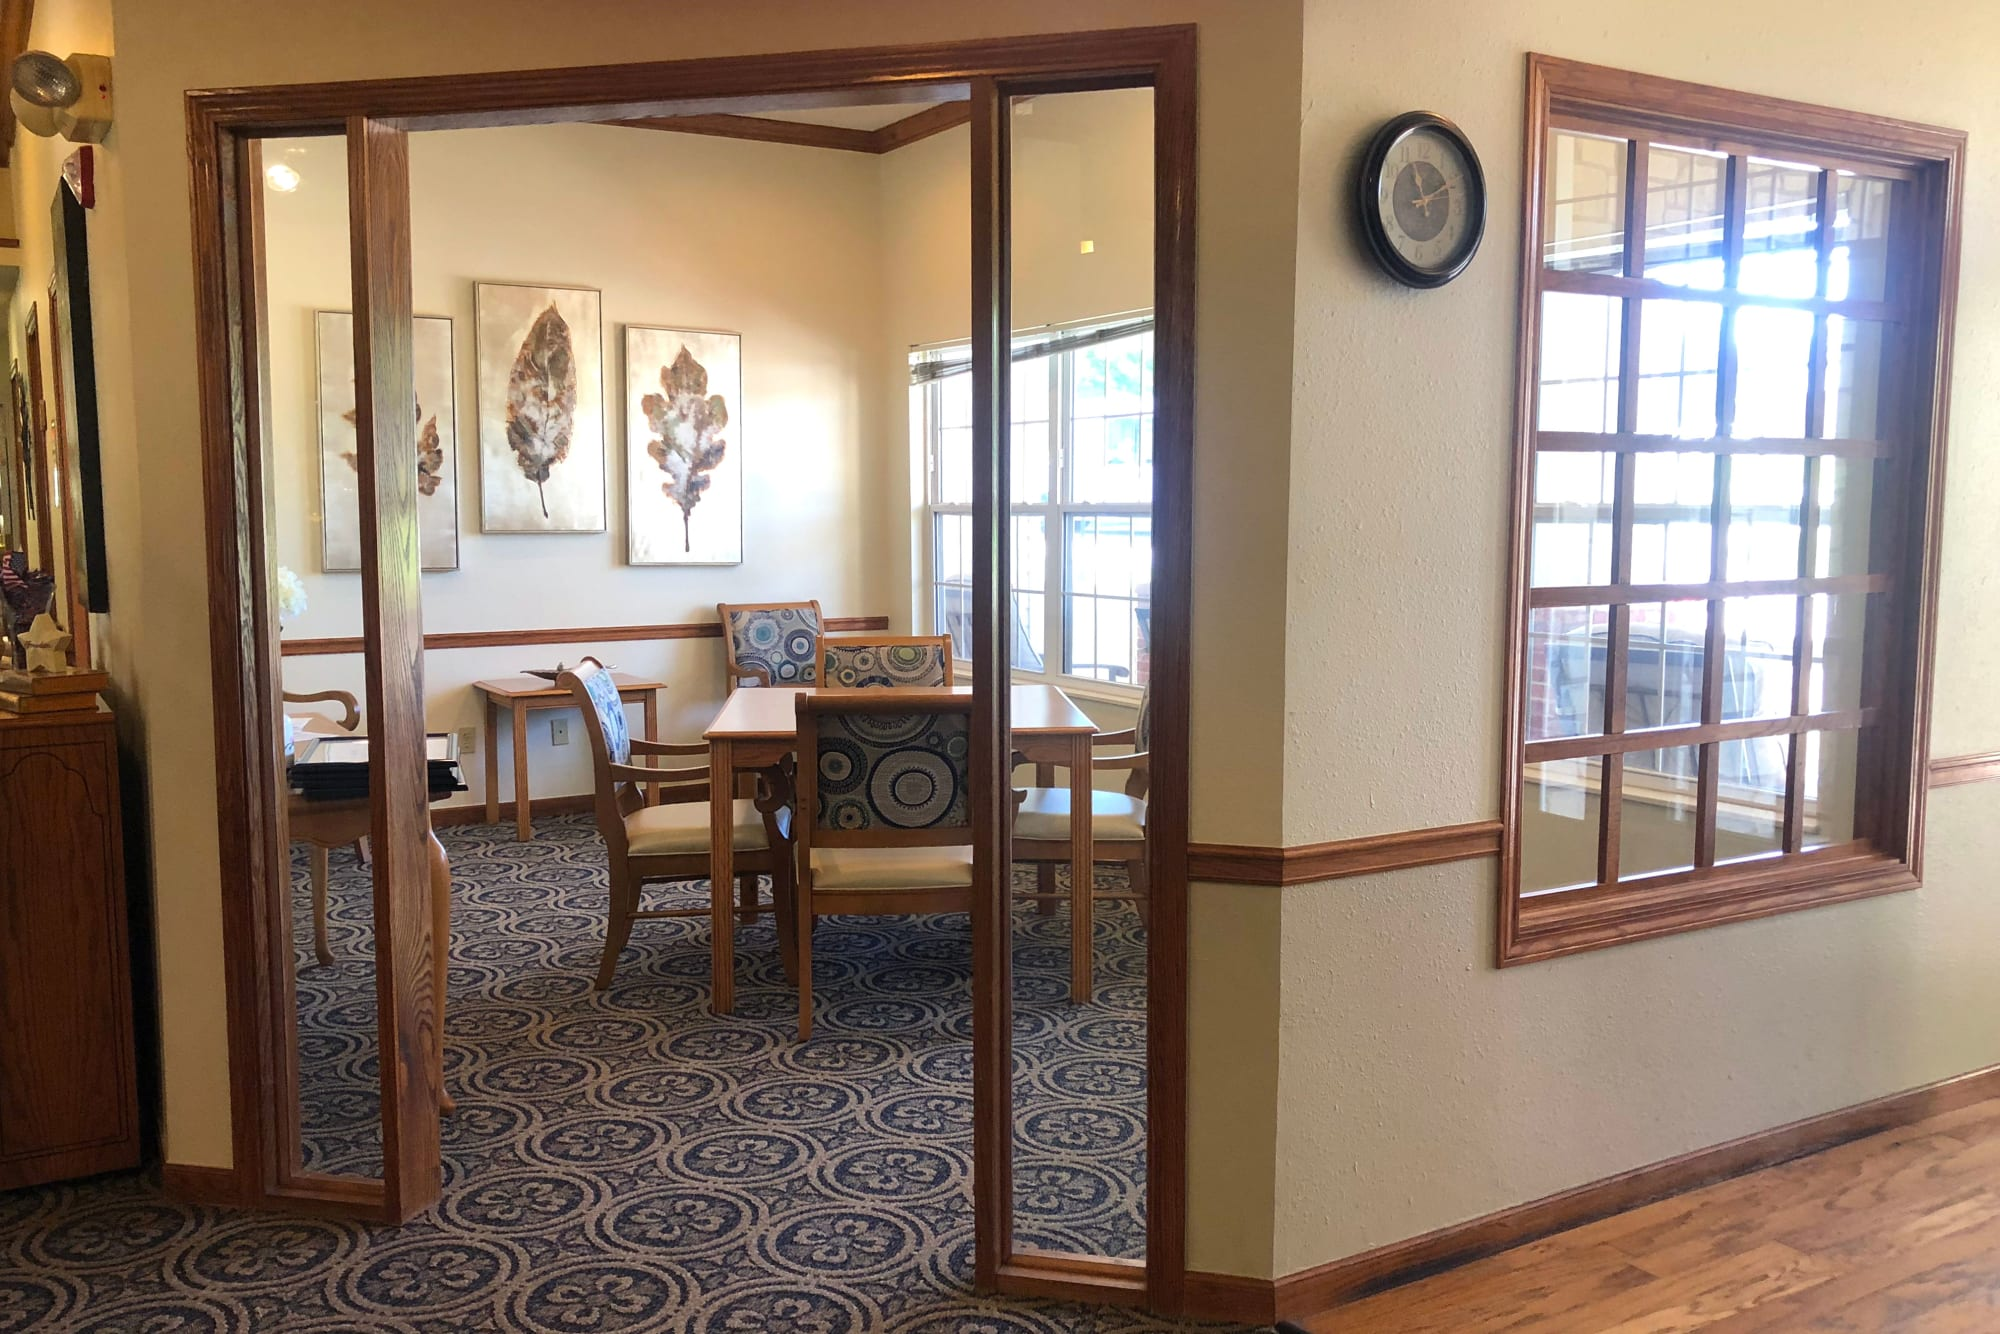 Private dining at Ashbrook Village in Duncan, Oklahoma.